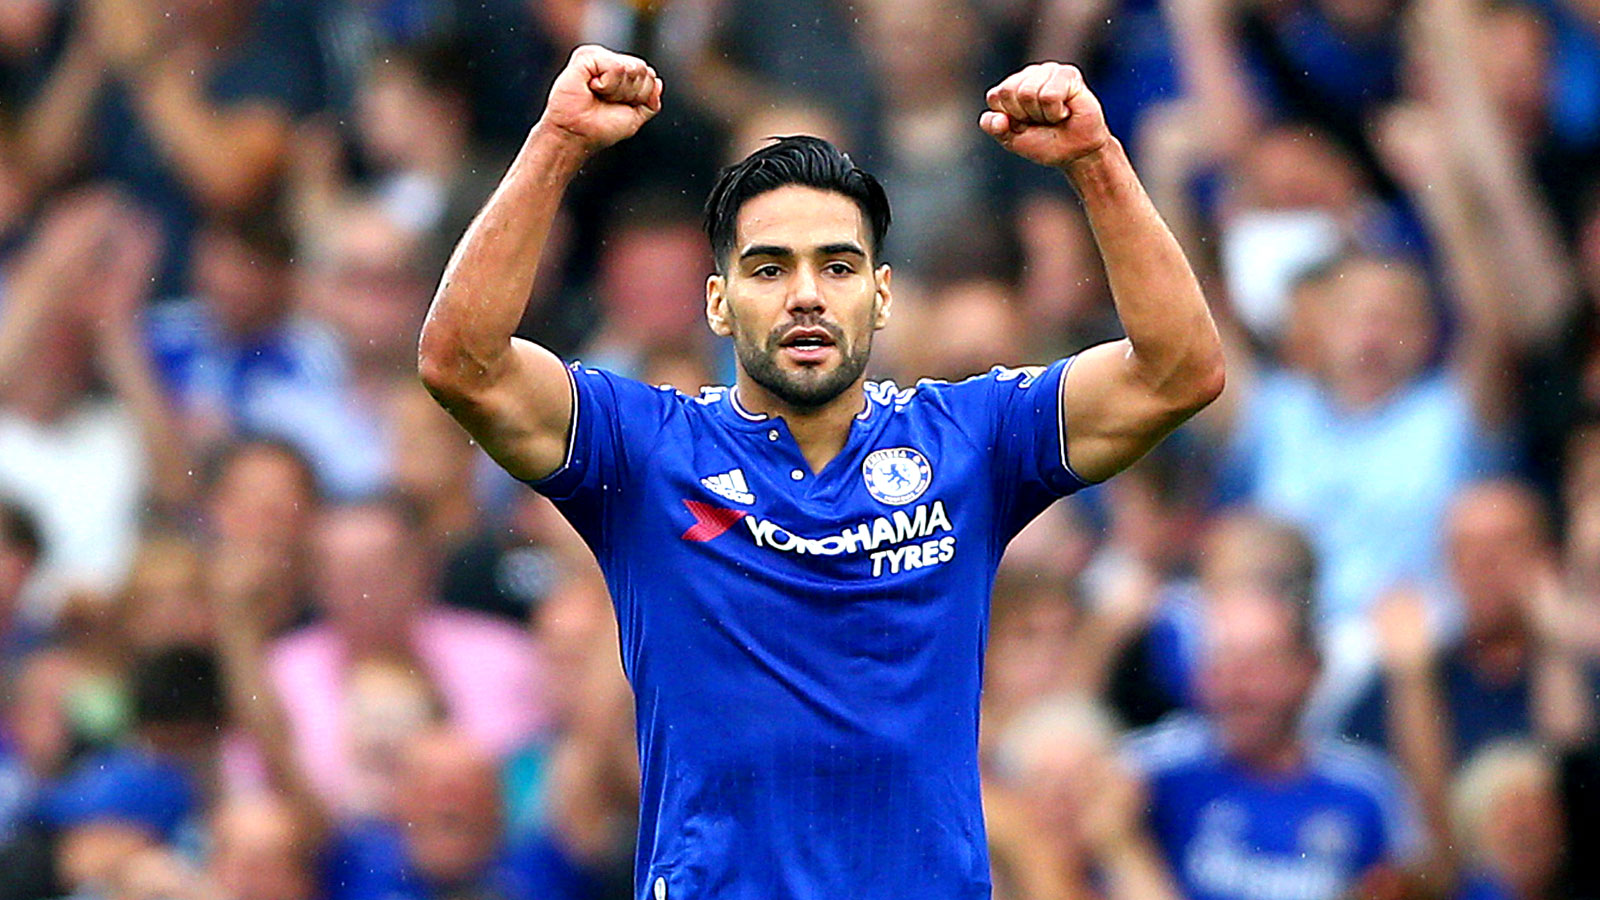 Columbus Crew SC lead charge for Chelsea flop Falcao